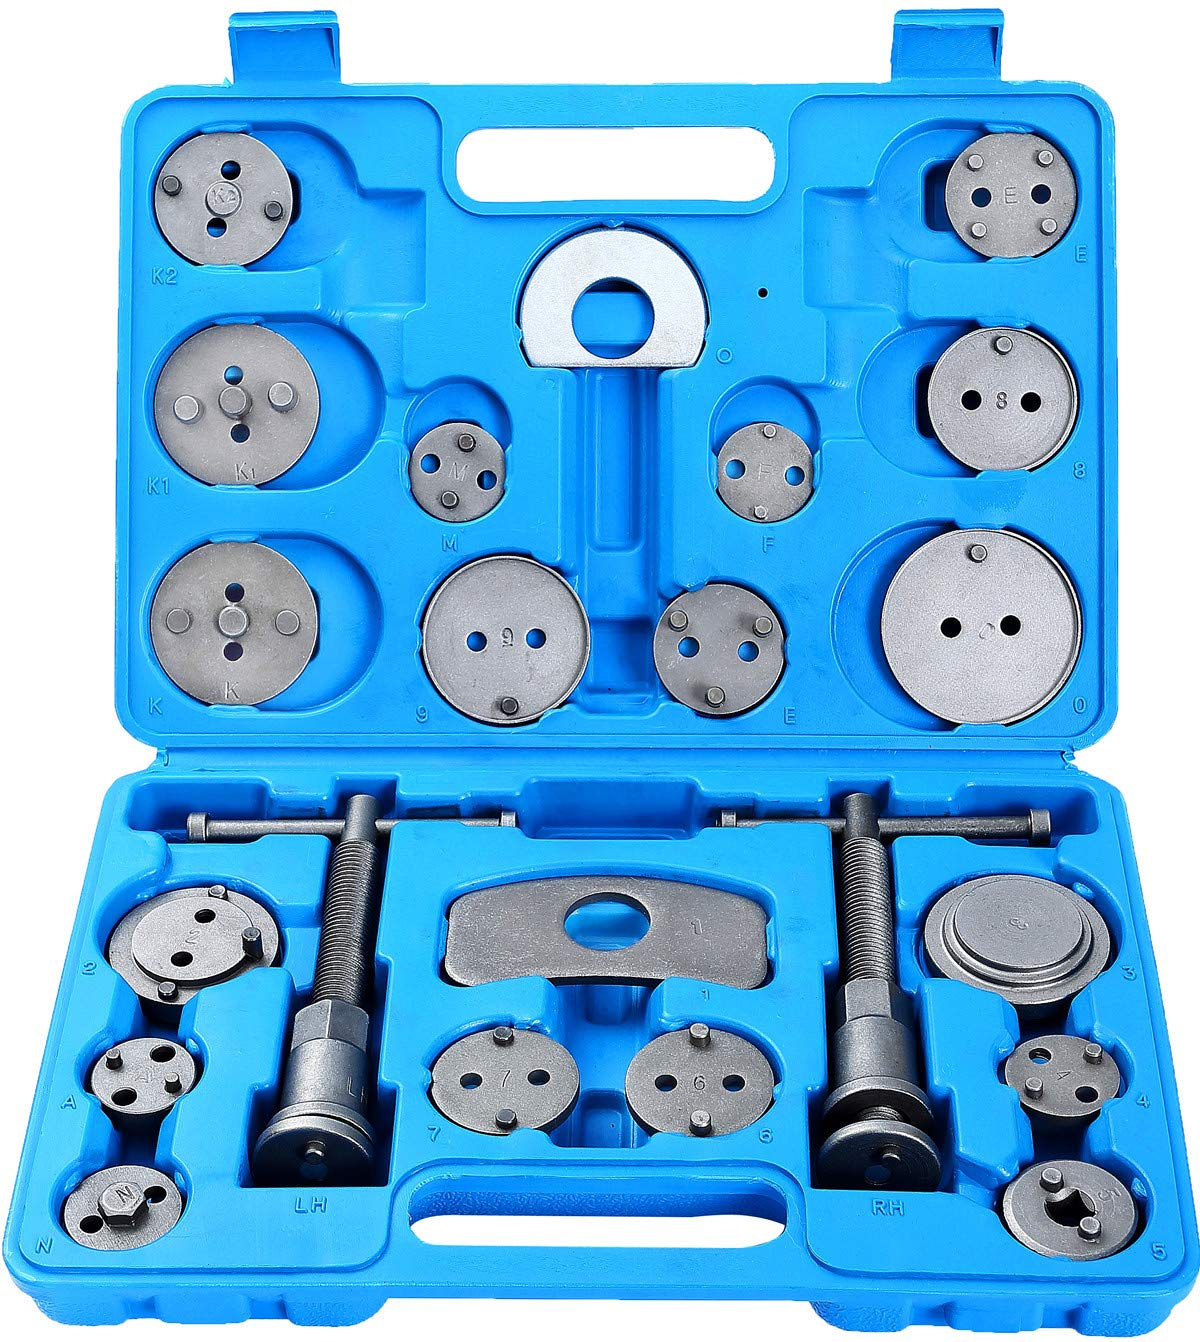 Japanese Makes//Models European ATP 23pcs Heavy Duty Disc Brake Caliper Tool Set and Wind Back Kit for Brake Pad Replacement Fits Most American